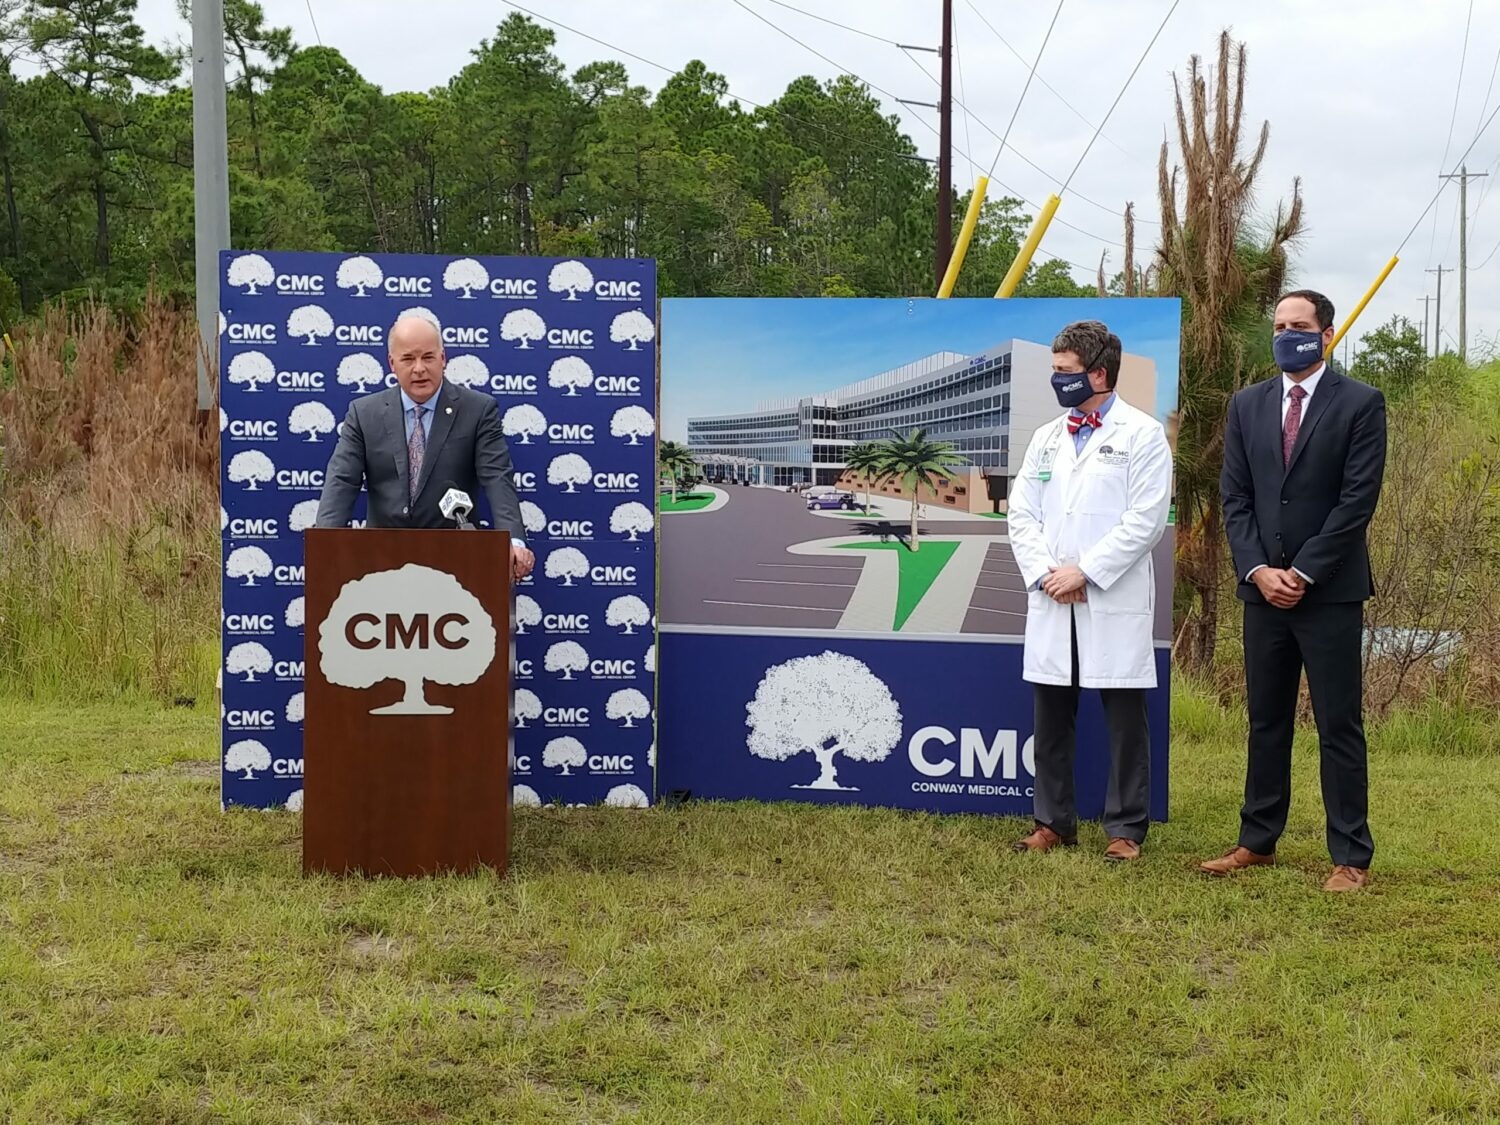 CMC Announces New Hospital in Carolina Forest